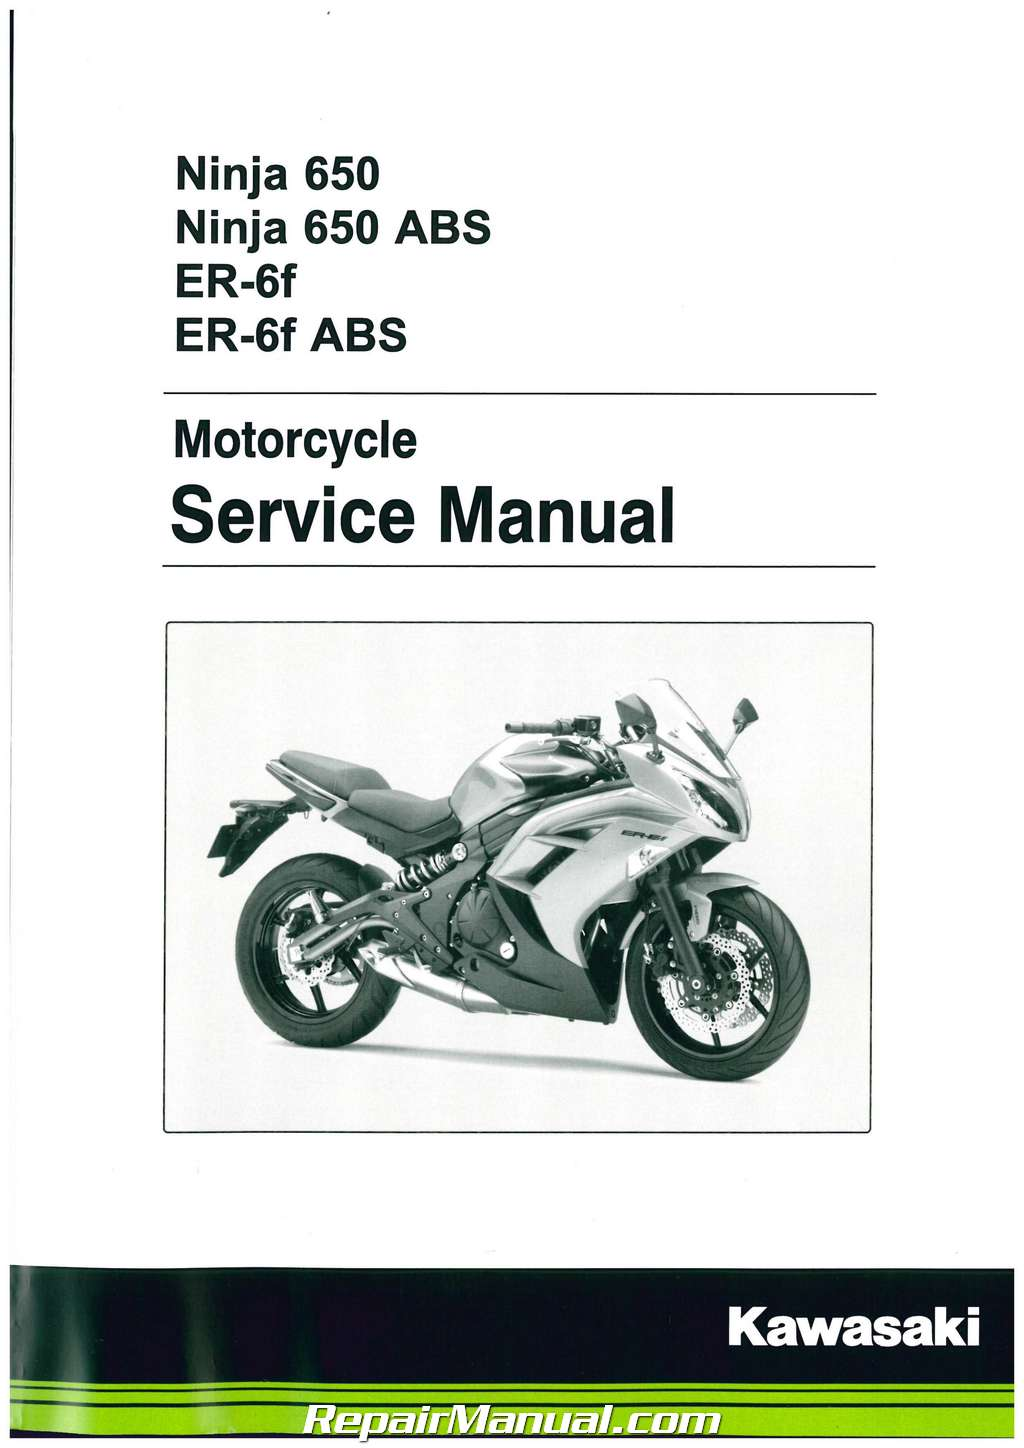 2012 2016 kawasaki ex650 ninja 650 motorcycle service manual rh repairmanual com Ninja Training Manual Ninja Master